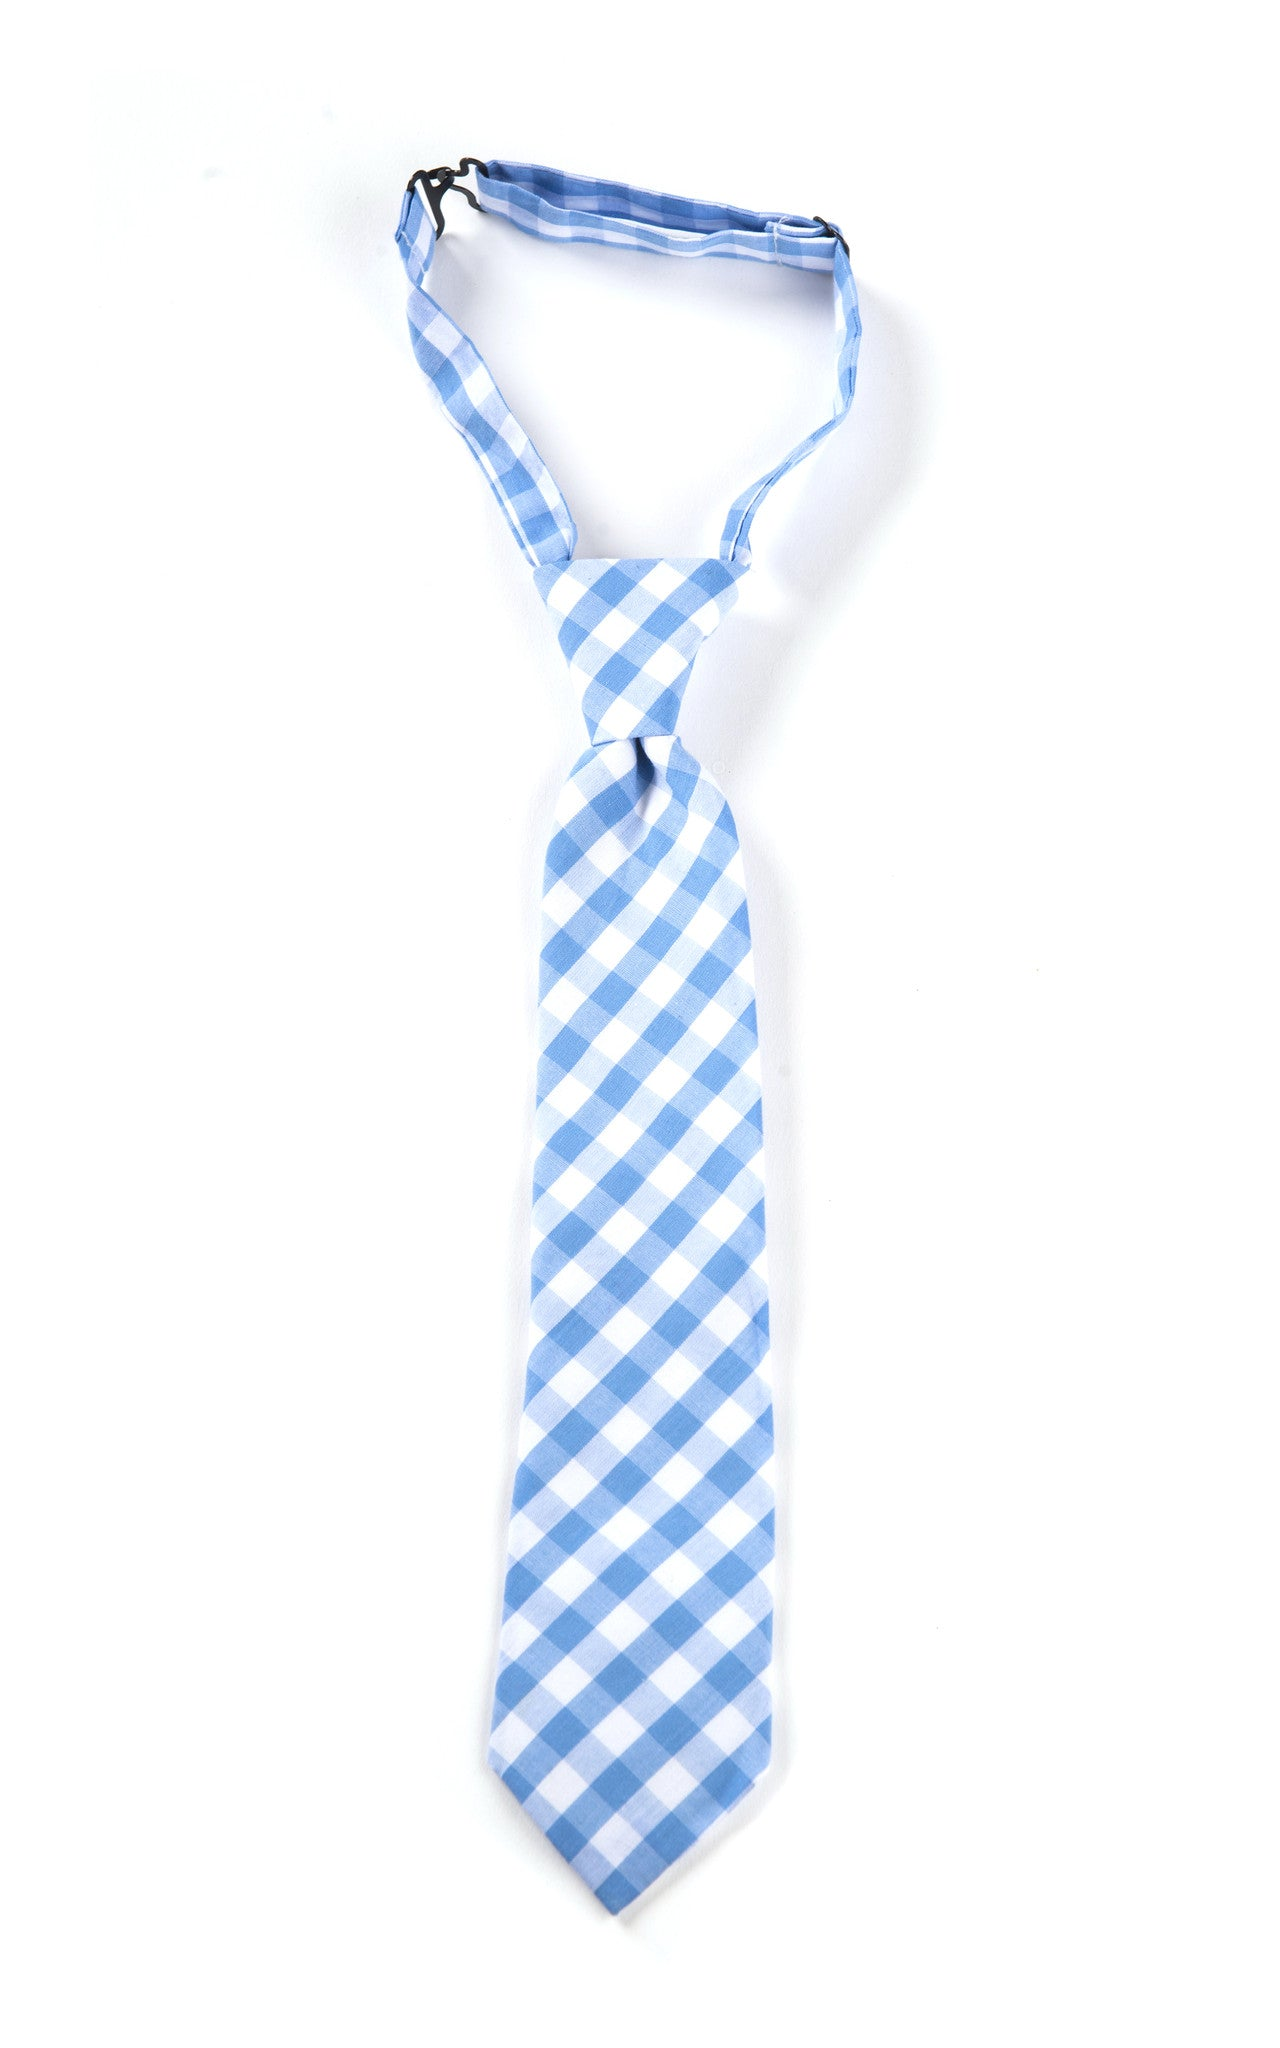 Dallas Necktie